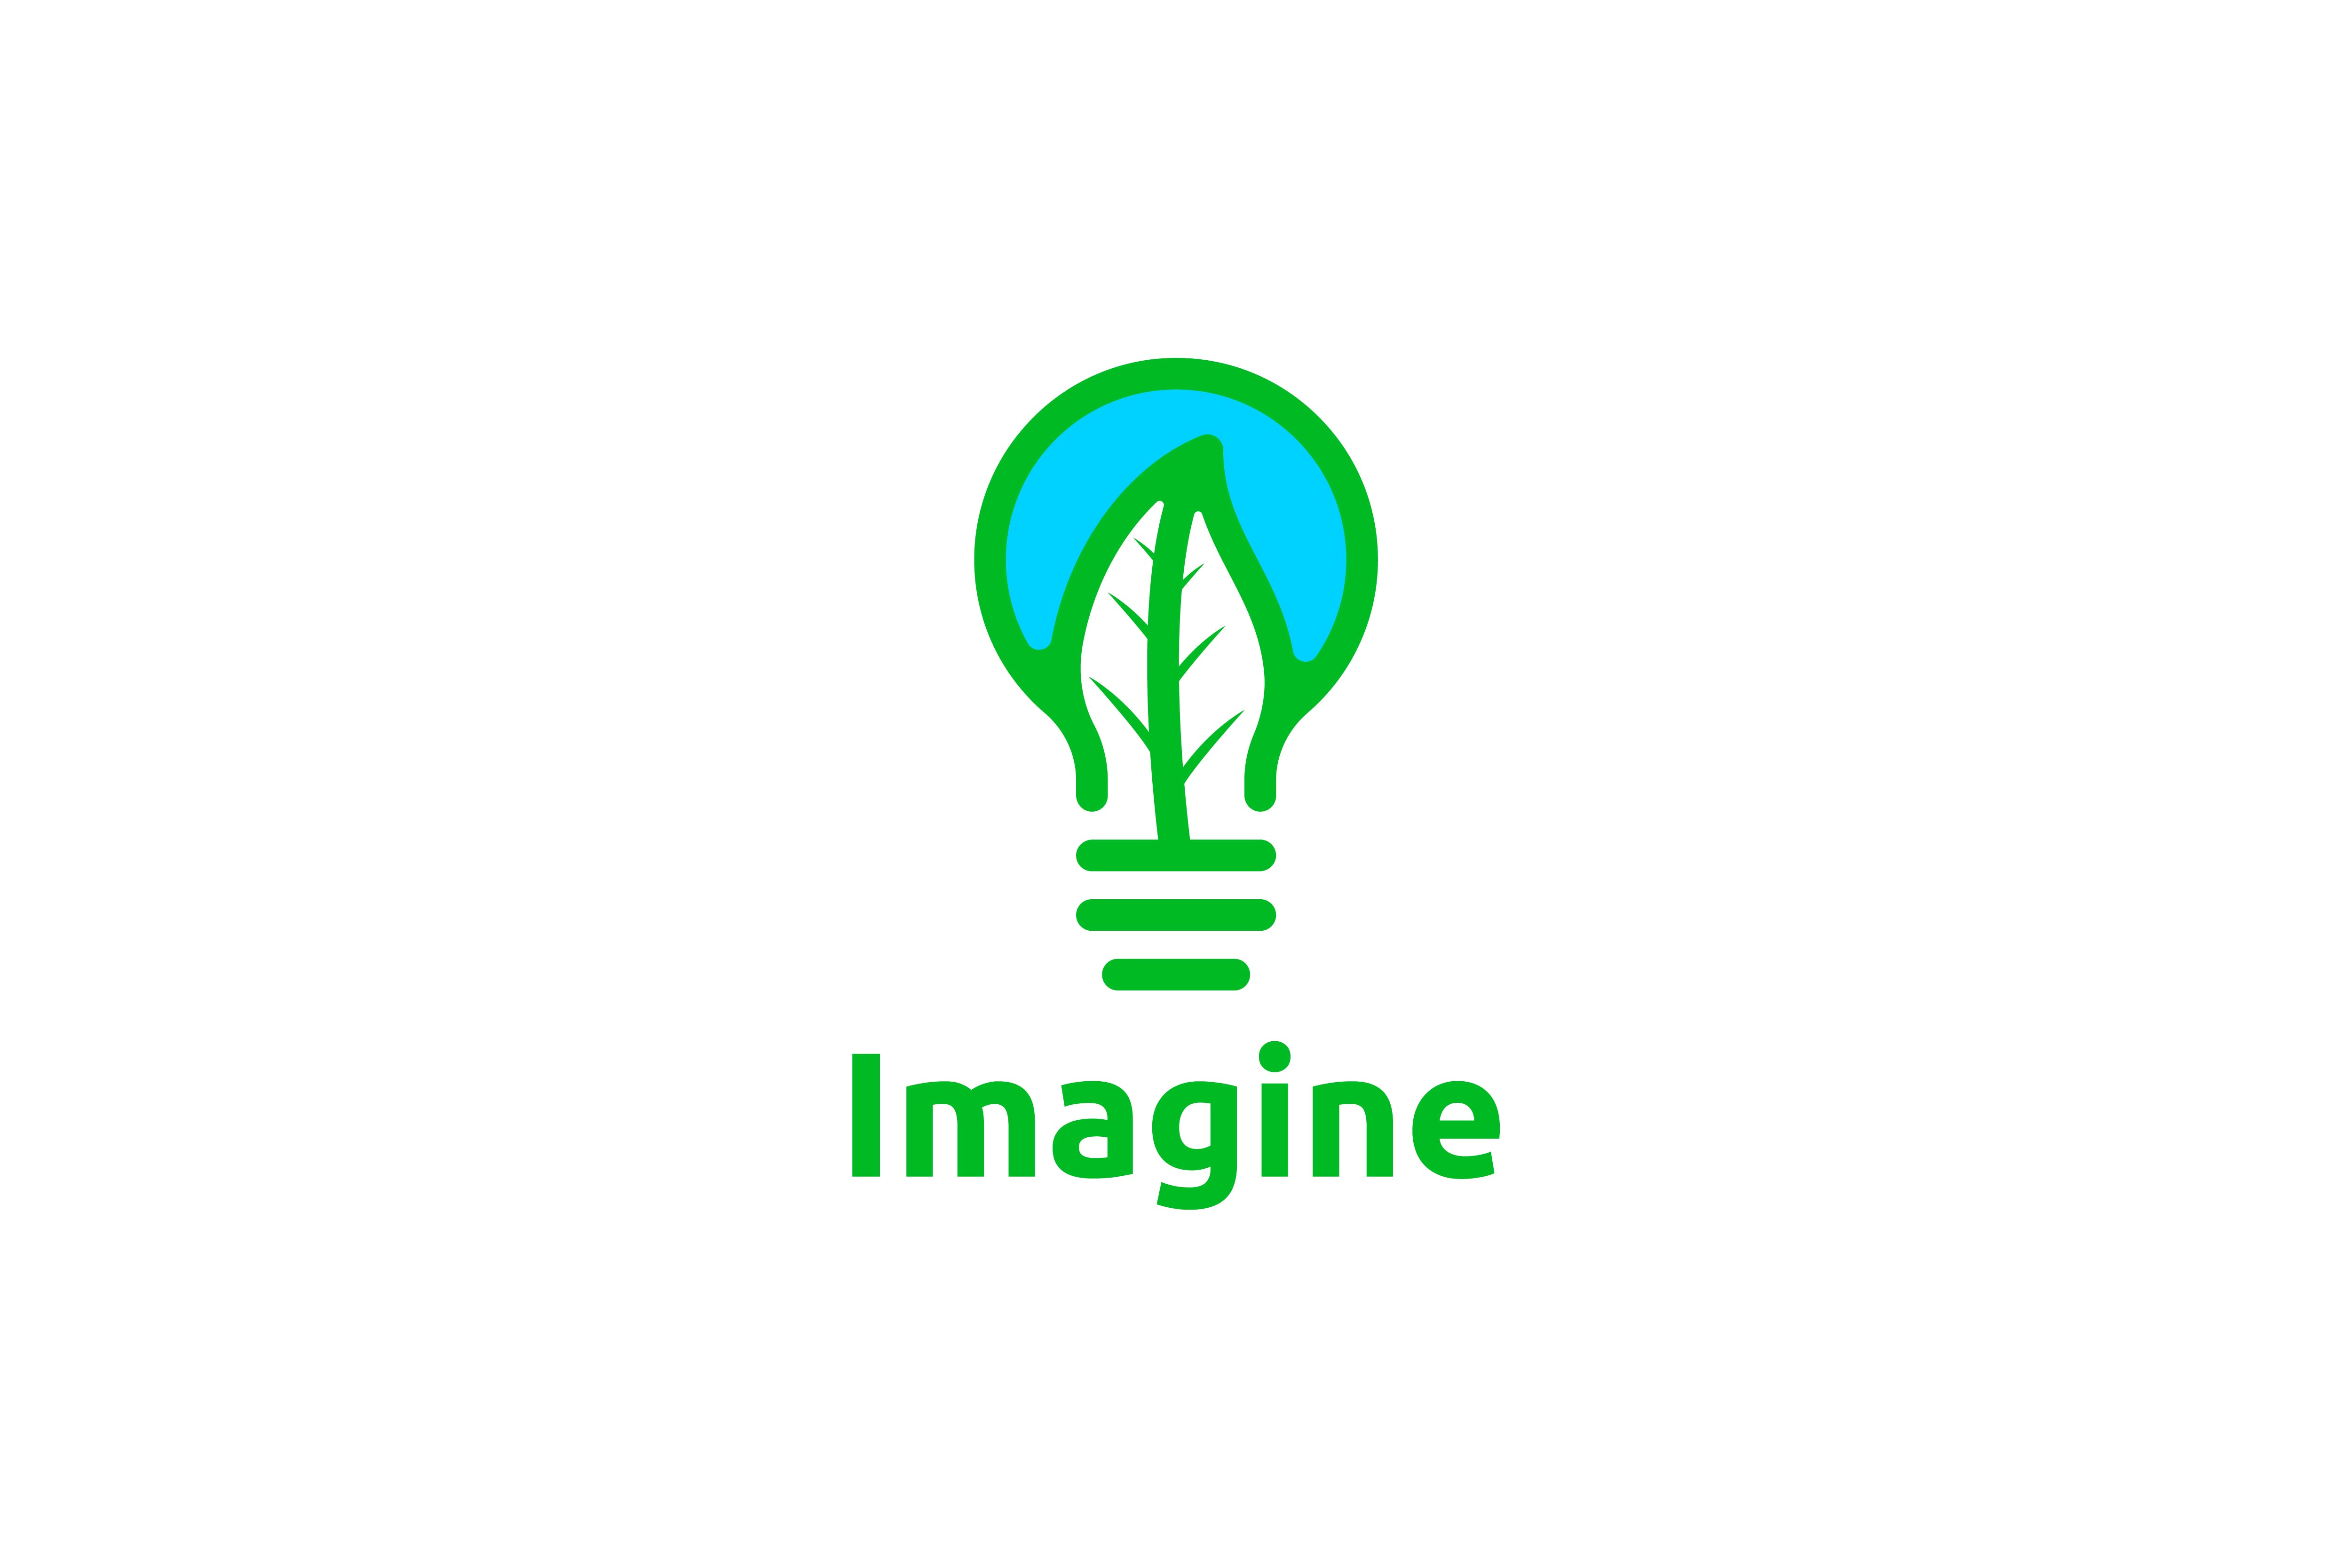 Download Free Bulb And Leaf Imagine Healthy Logo Graphic By for Cricut Explore, Silhouette and other cutting machines.